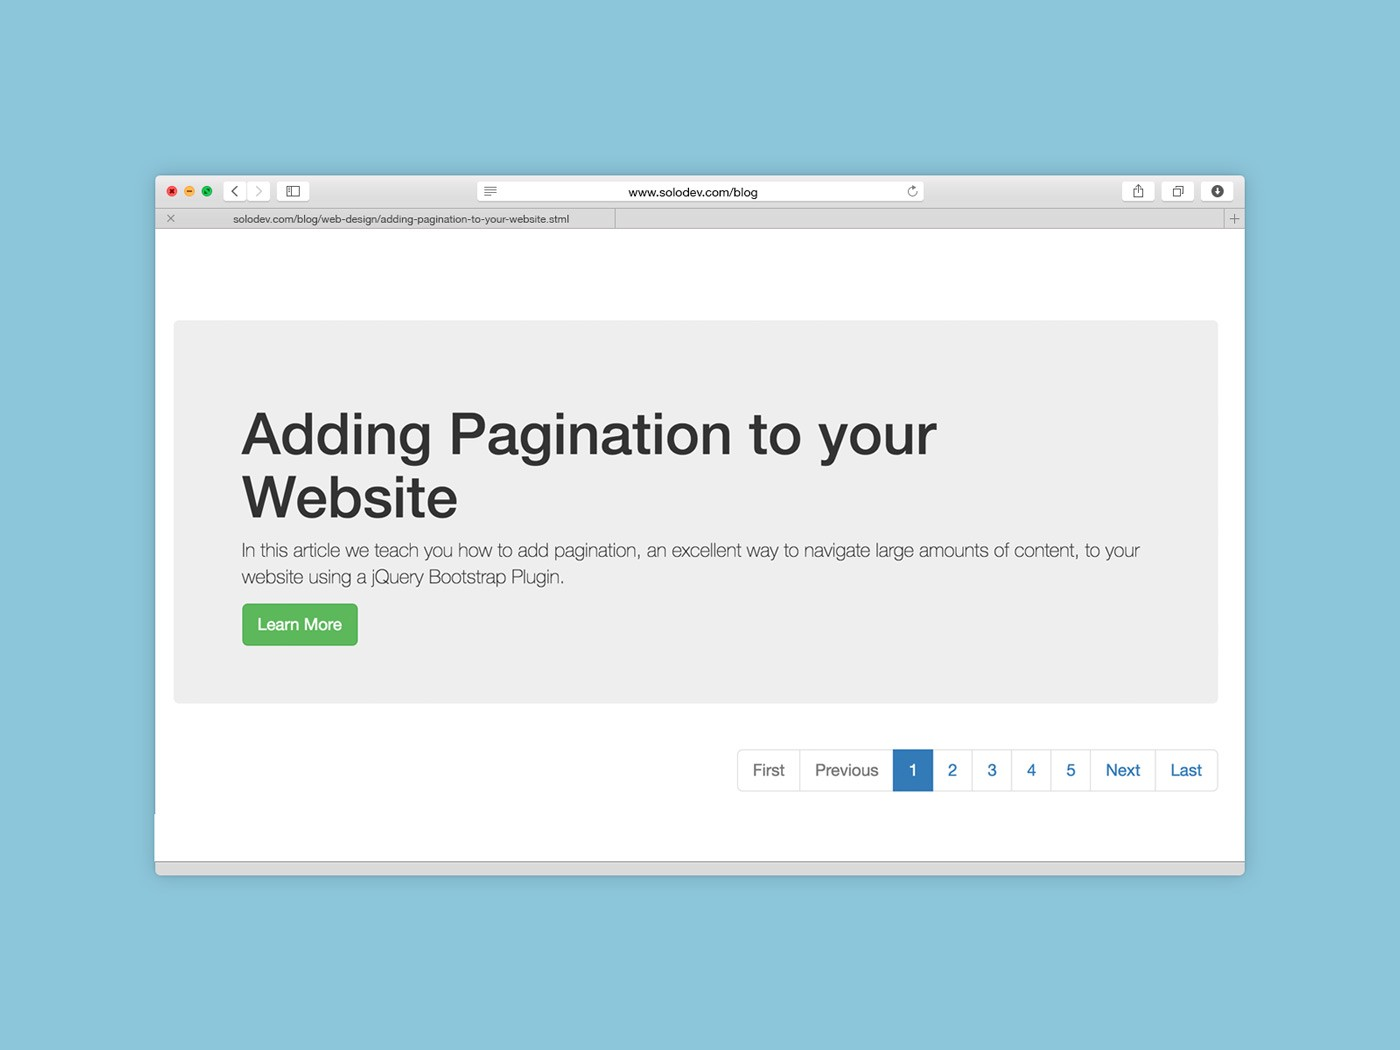 Adding Pagination to your Website